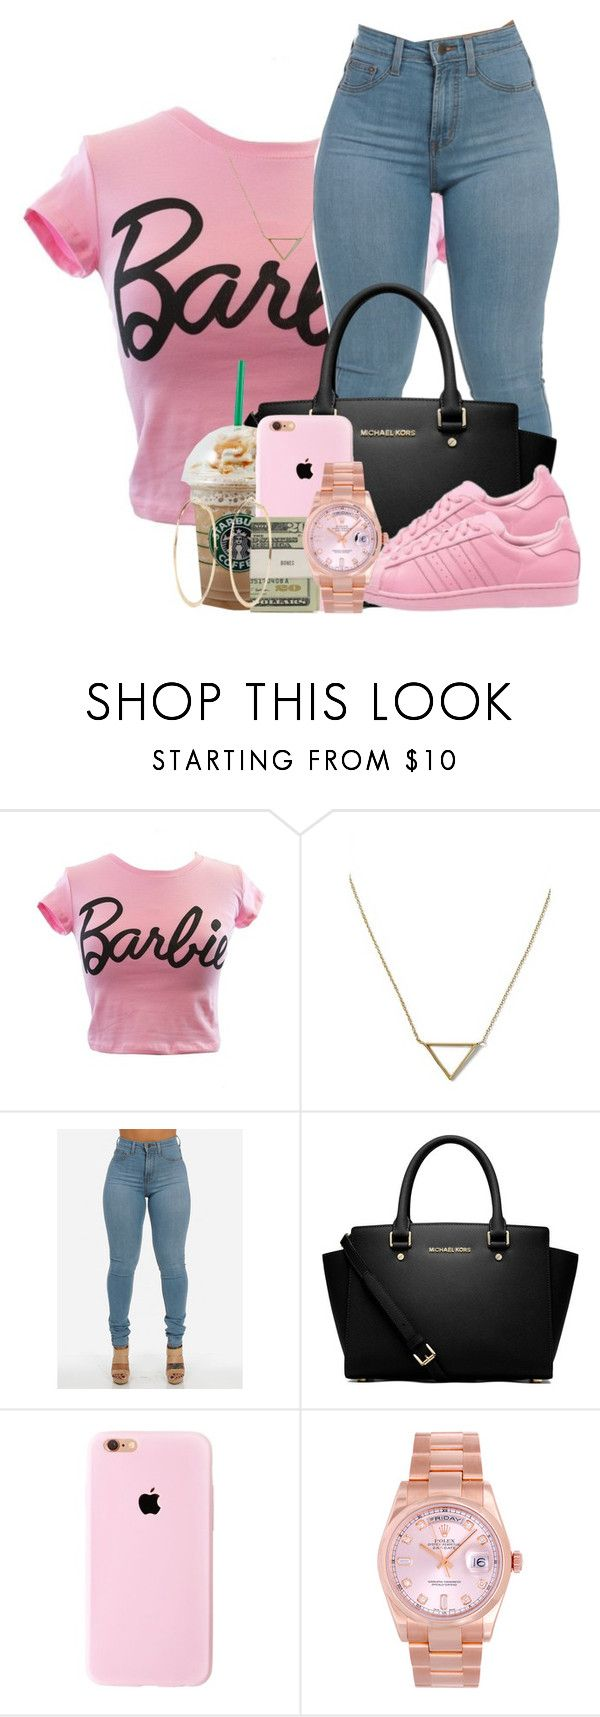 """""""I'm a Barbie Girl"""" by f0rever-d ❤ liked on Polyvore featuring Mighty Fine, Banana Republic, MICHAEL Michael Kors, adidas Originals, Jack Spade, Rolex and River Island"""